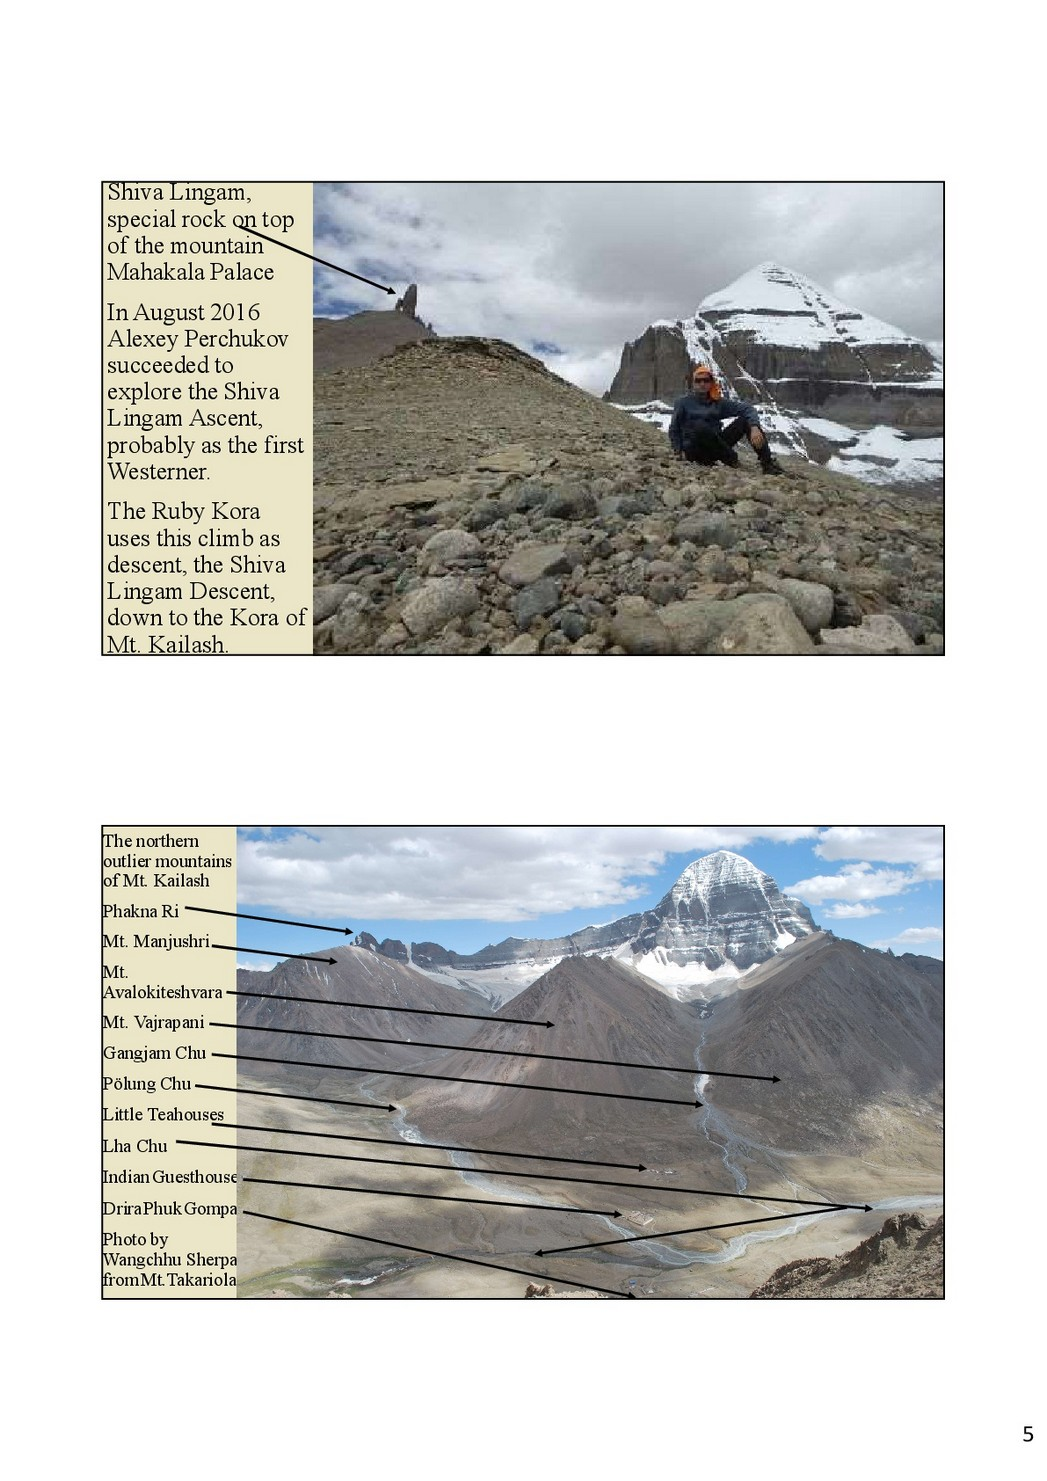 Spiral-Kora-of-Mt.-Kailash-23